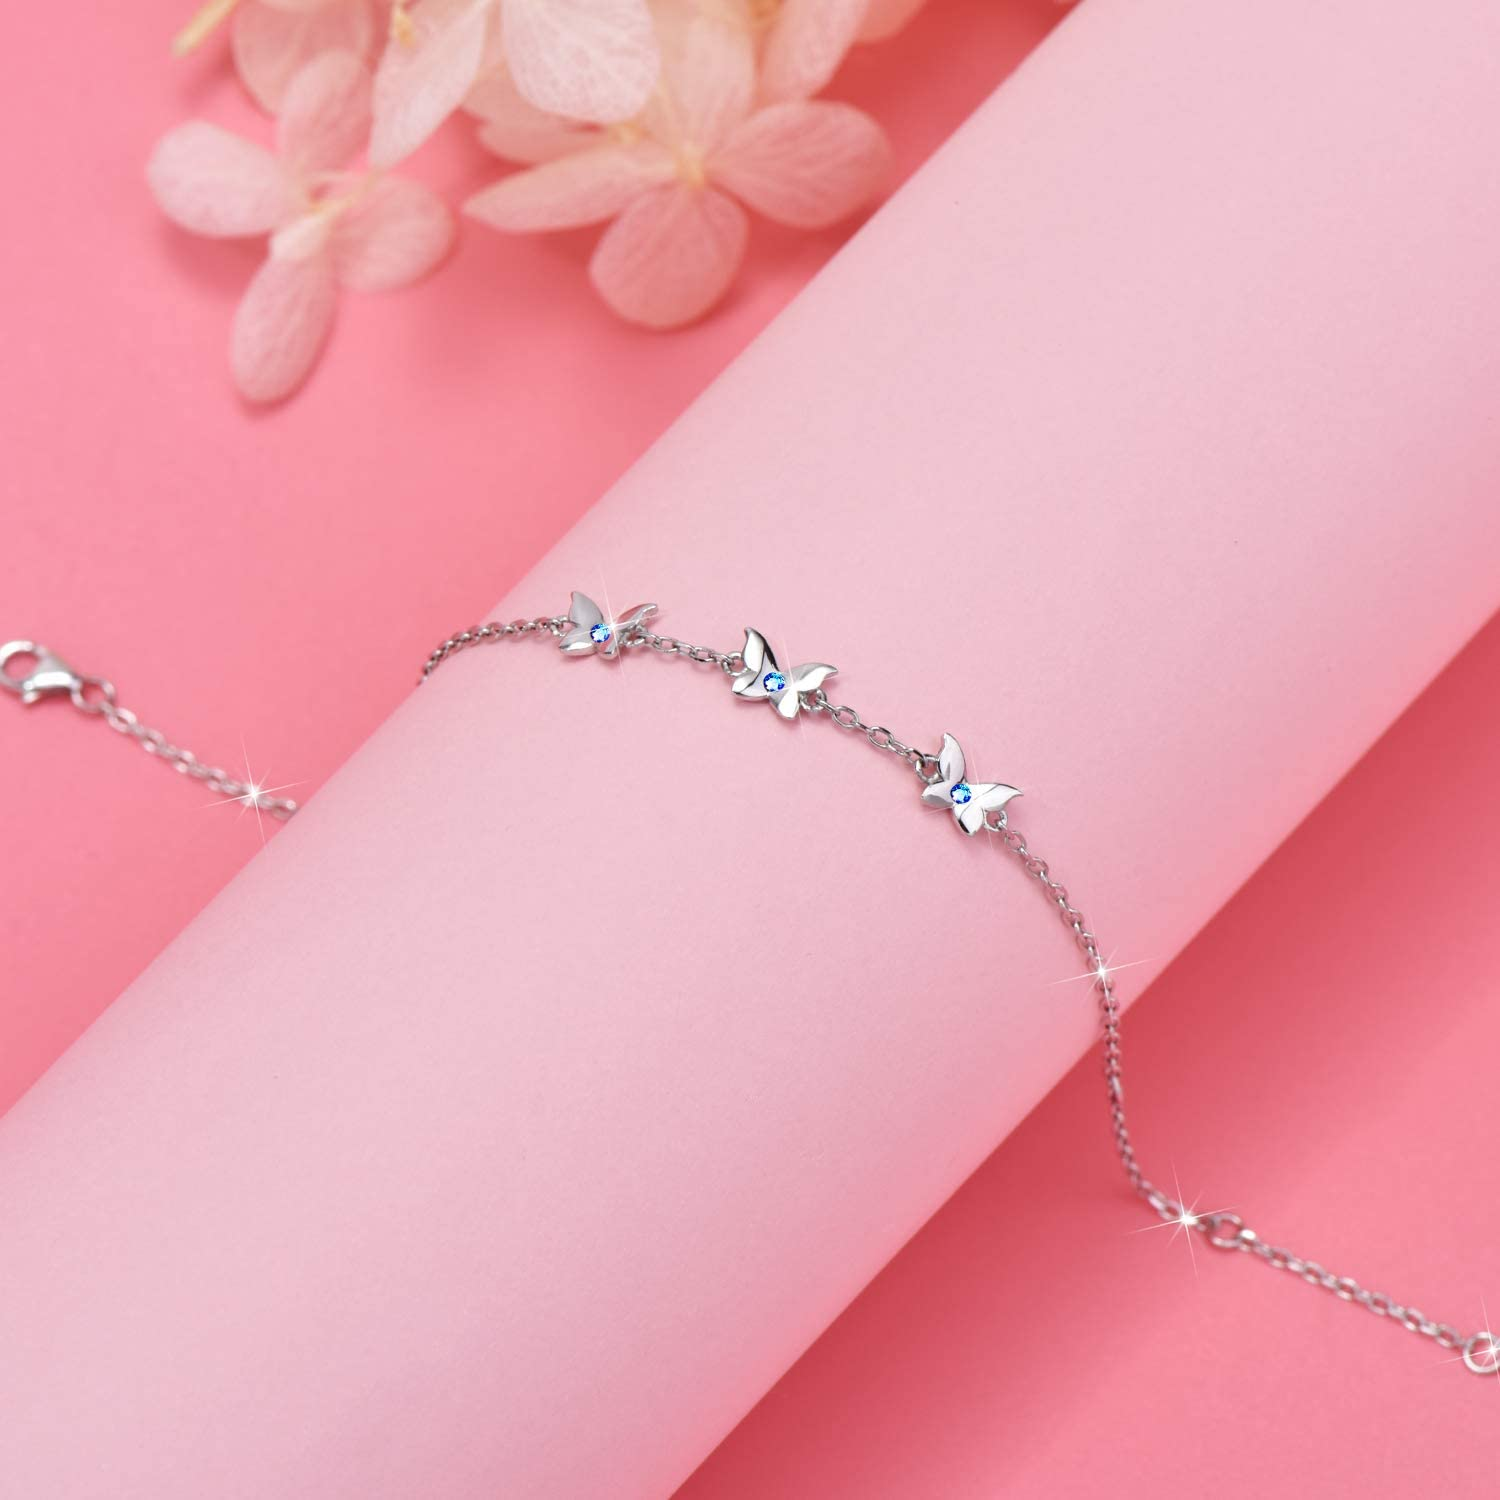 Blue Butterfly Anklet for Women S925 Sterling Silver Adjustable Foot Ankle Bracelet Birthday Gifts for Girls